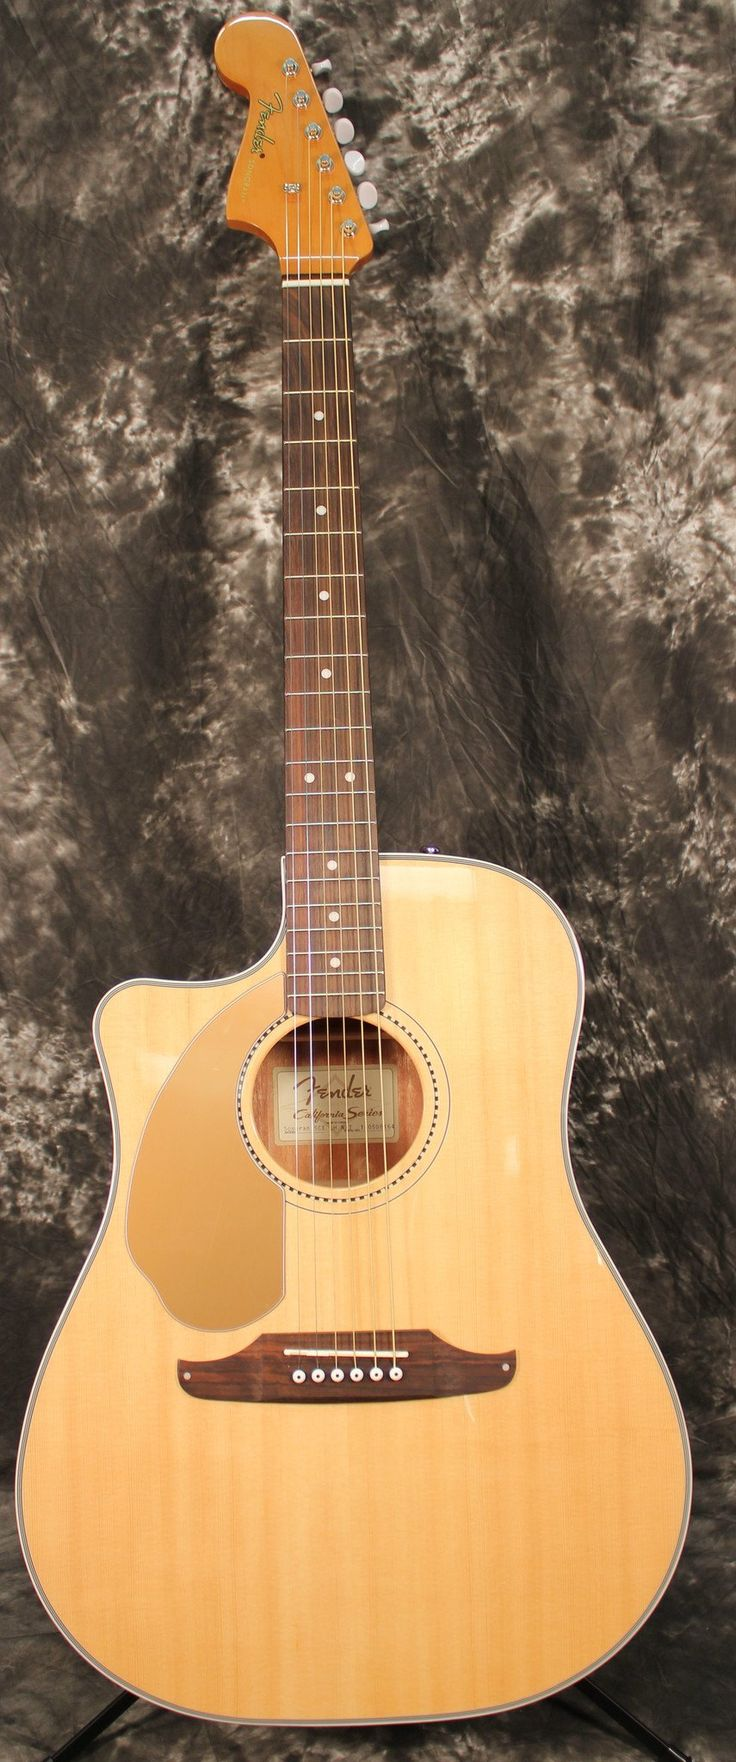 Fender Sonoran SCE Left-Handed Acoustic Guitar Natural